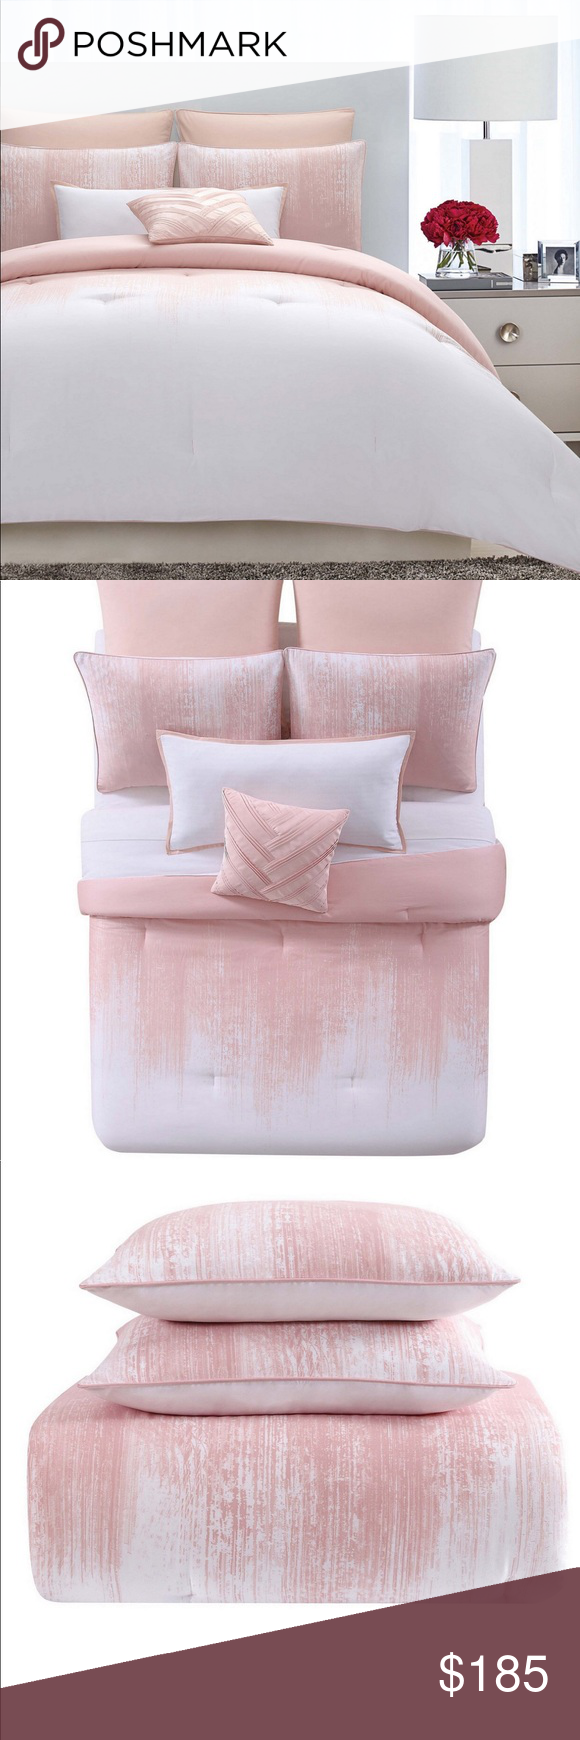 Photo of New Vince Camuto Full/Queen Comforter Set The Lyon comforter set by Vince Camuto…